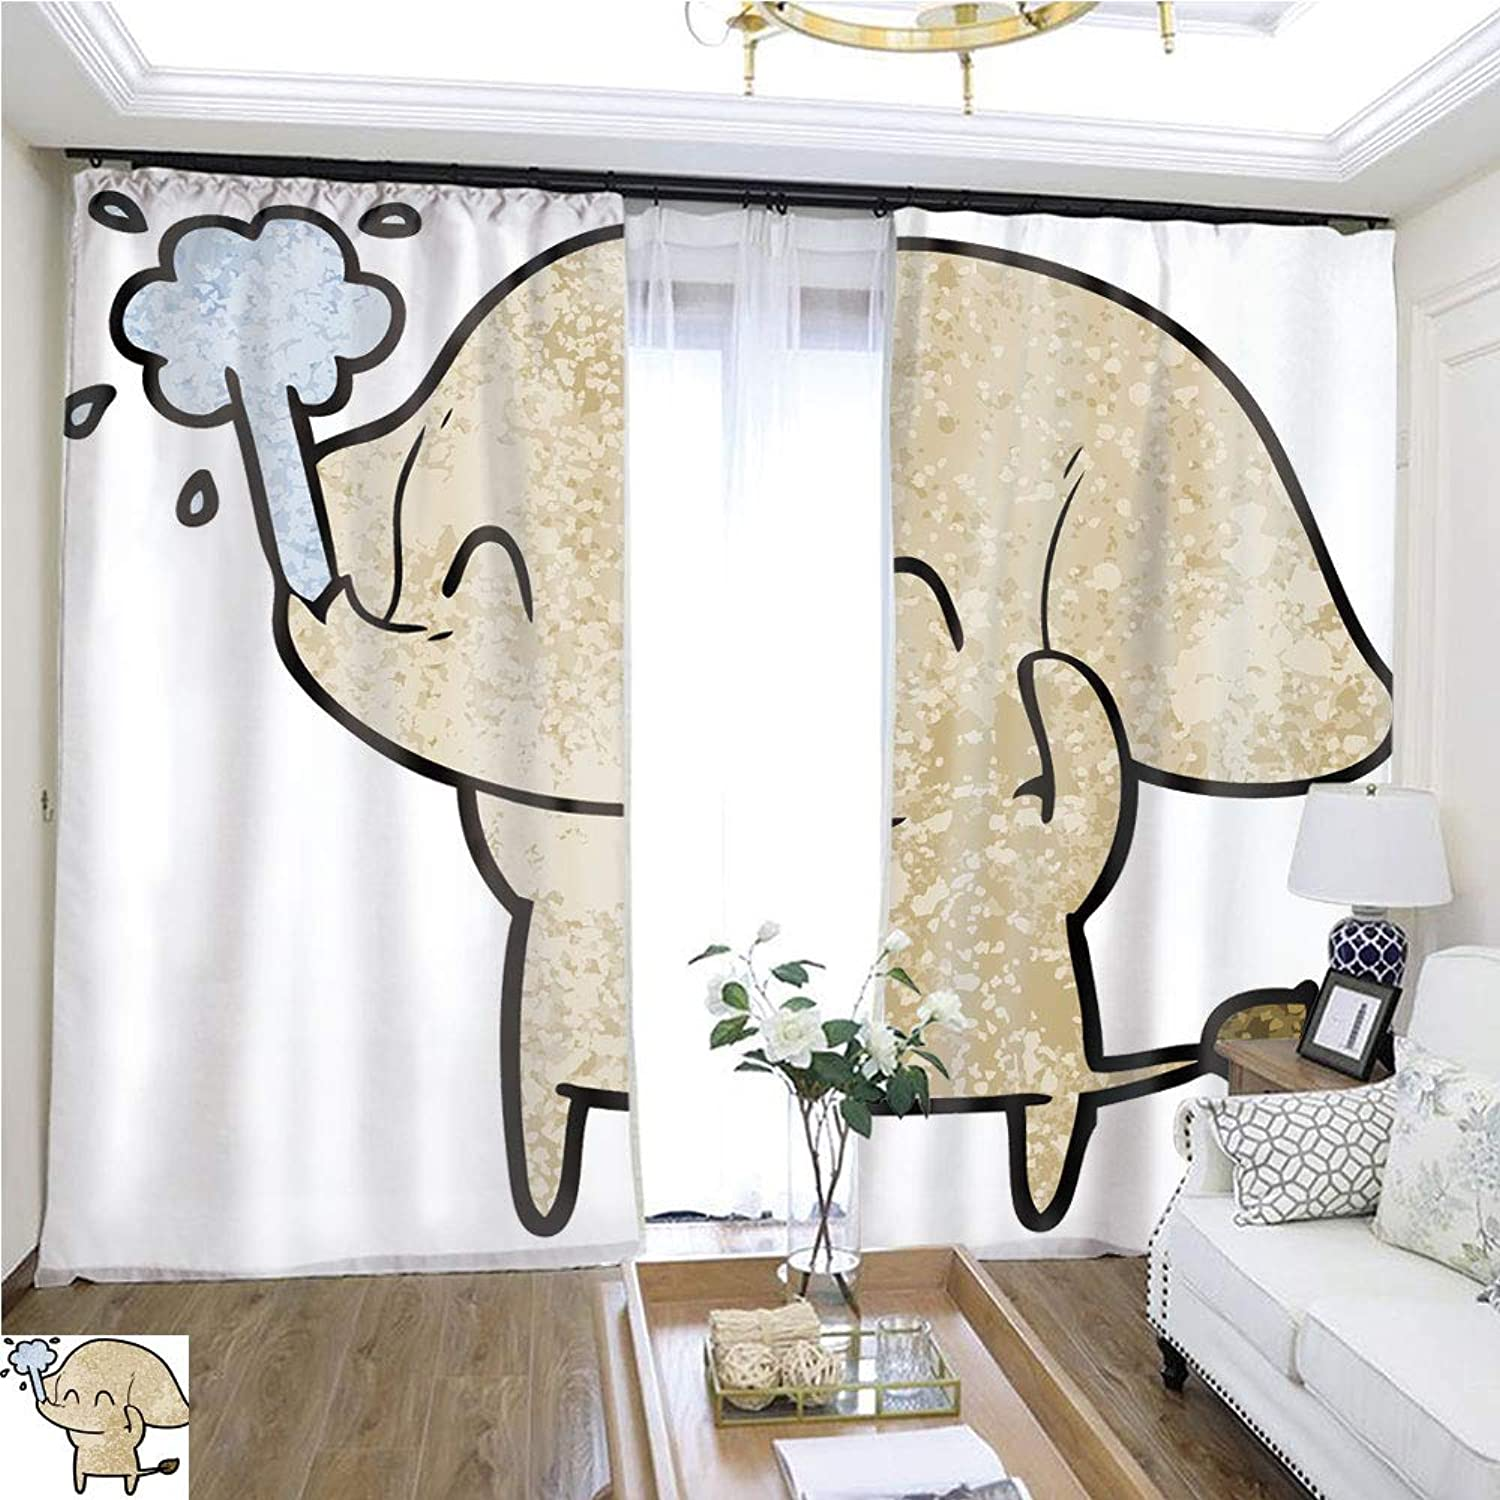 Air Port Screen Cute Cartoon Elephant spouting water12 W108 x L79 Eliminate The Turf Highprecision Curtains for bedrooms Living Rooms Kitchens etc.